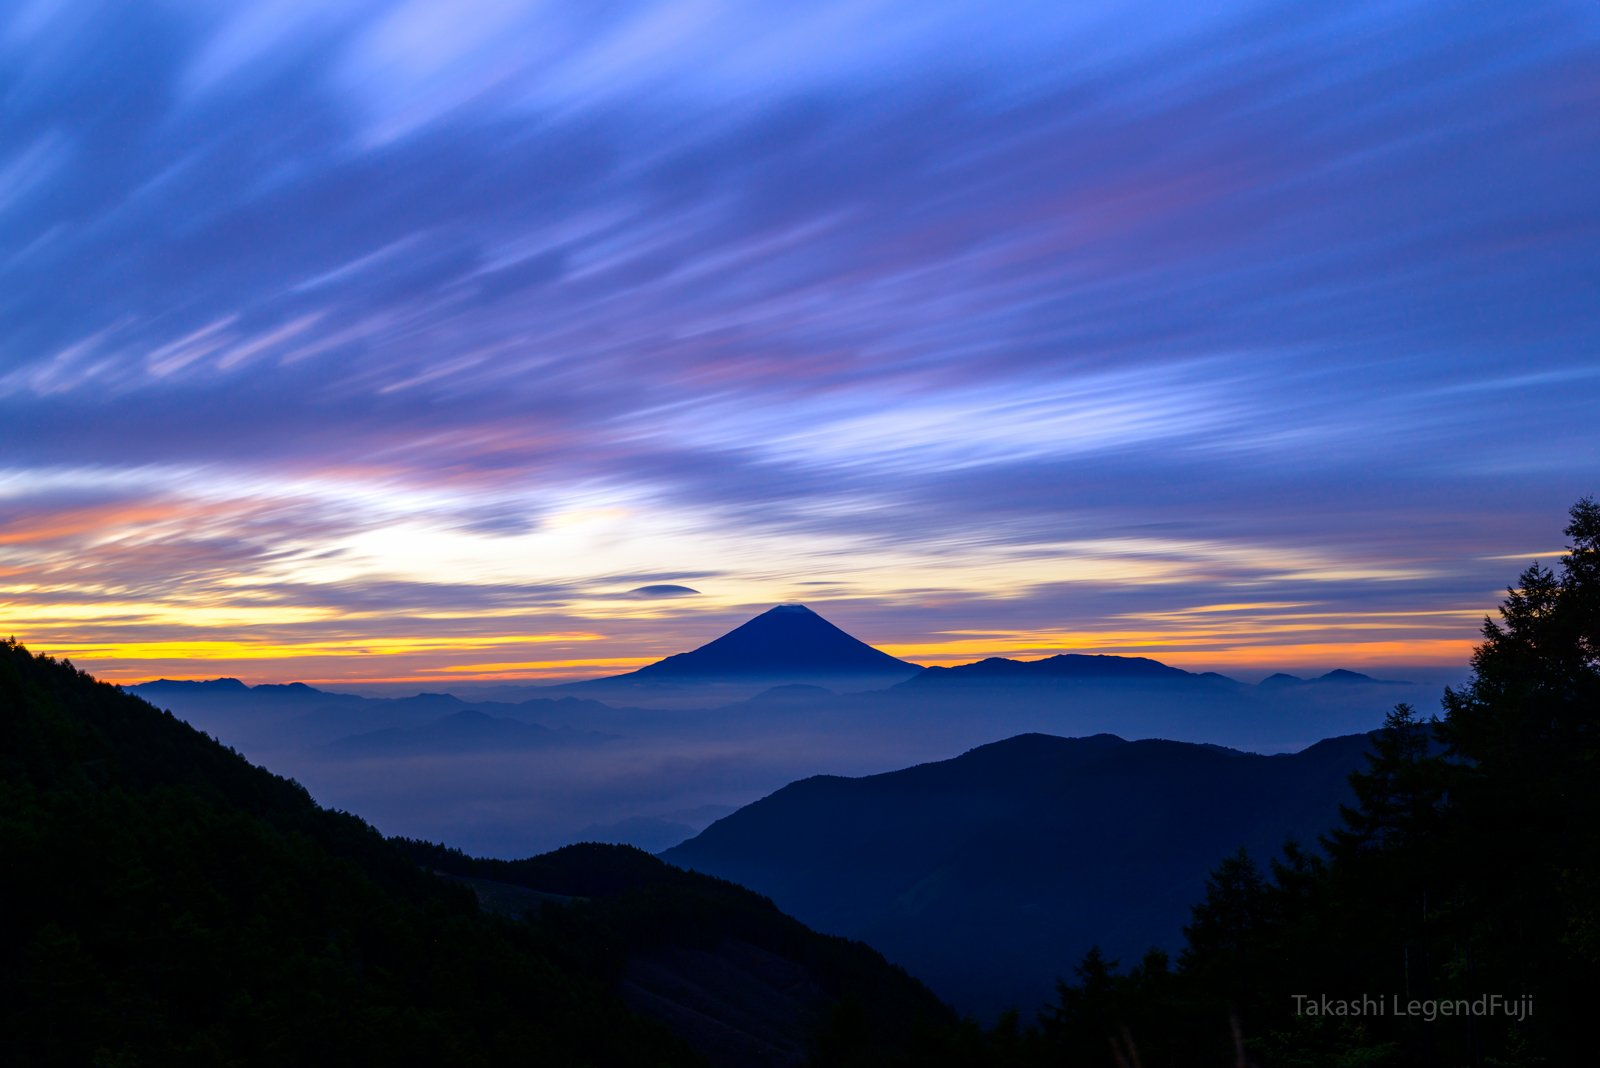 Fuji,mountain,Japan,red,blue,sky,cloud,morning glow,, Takashi